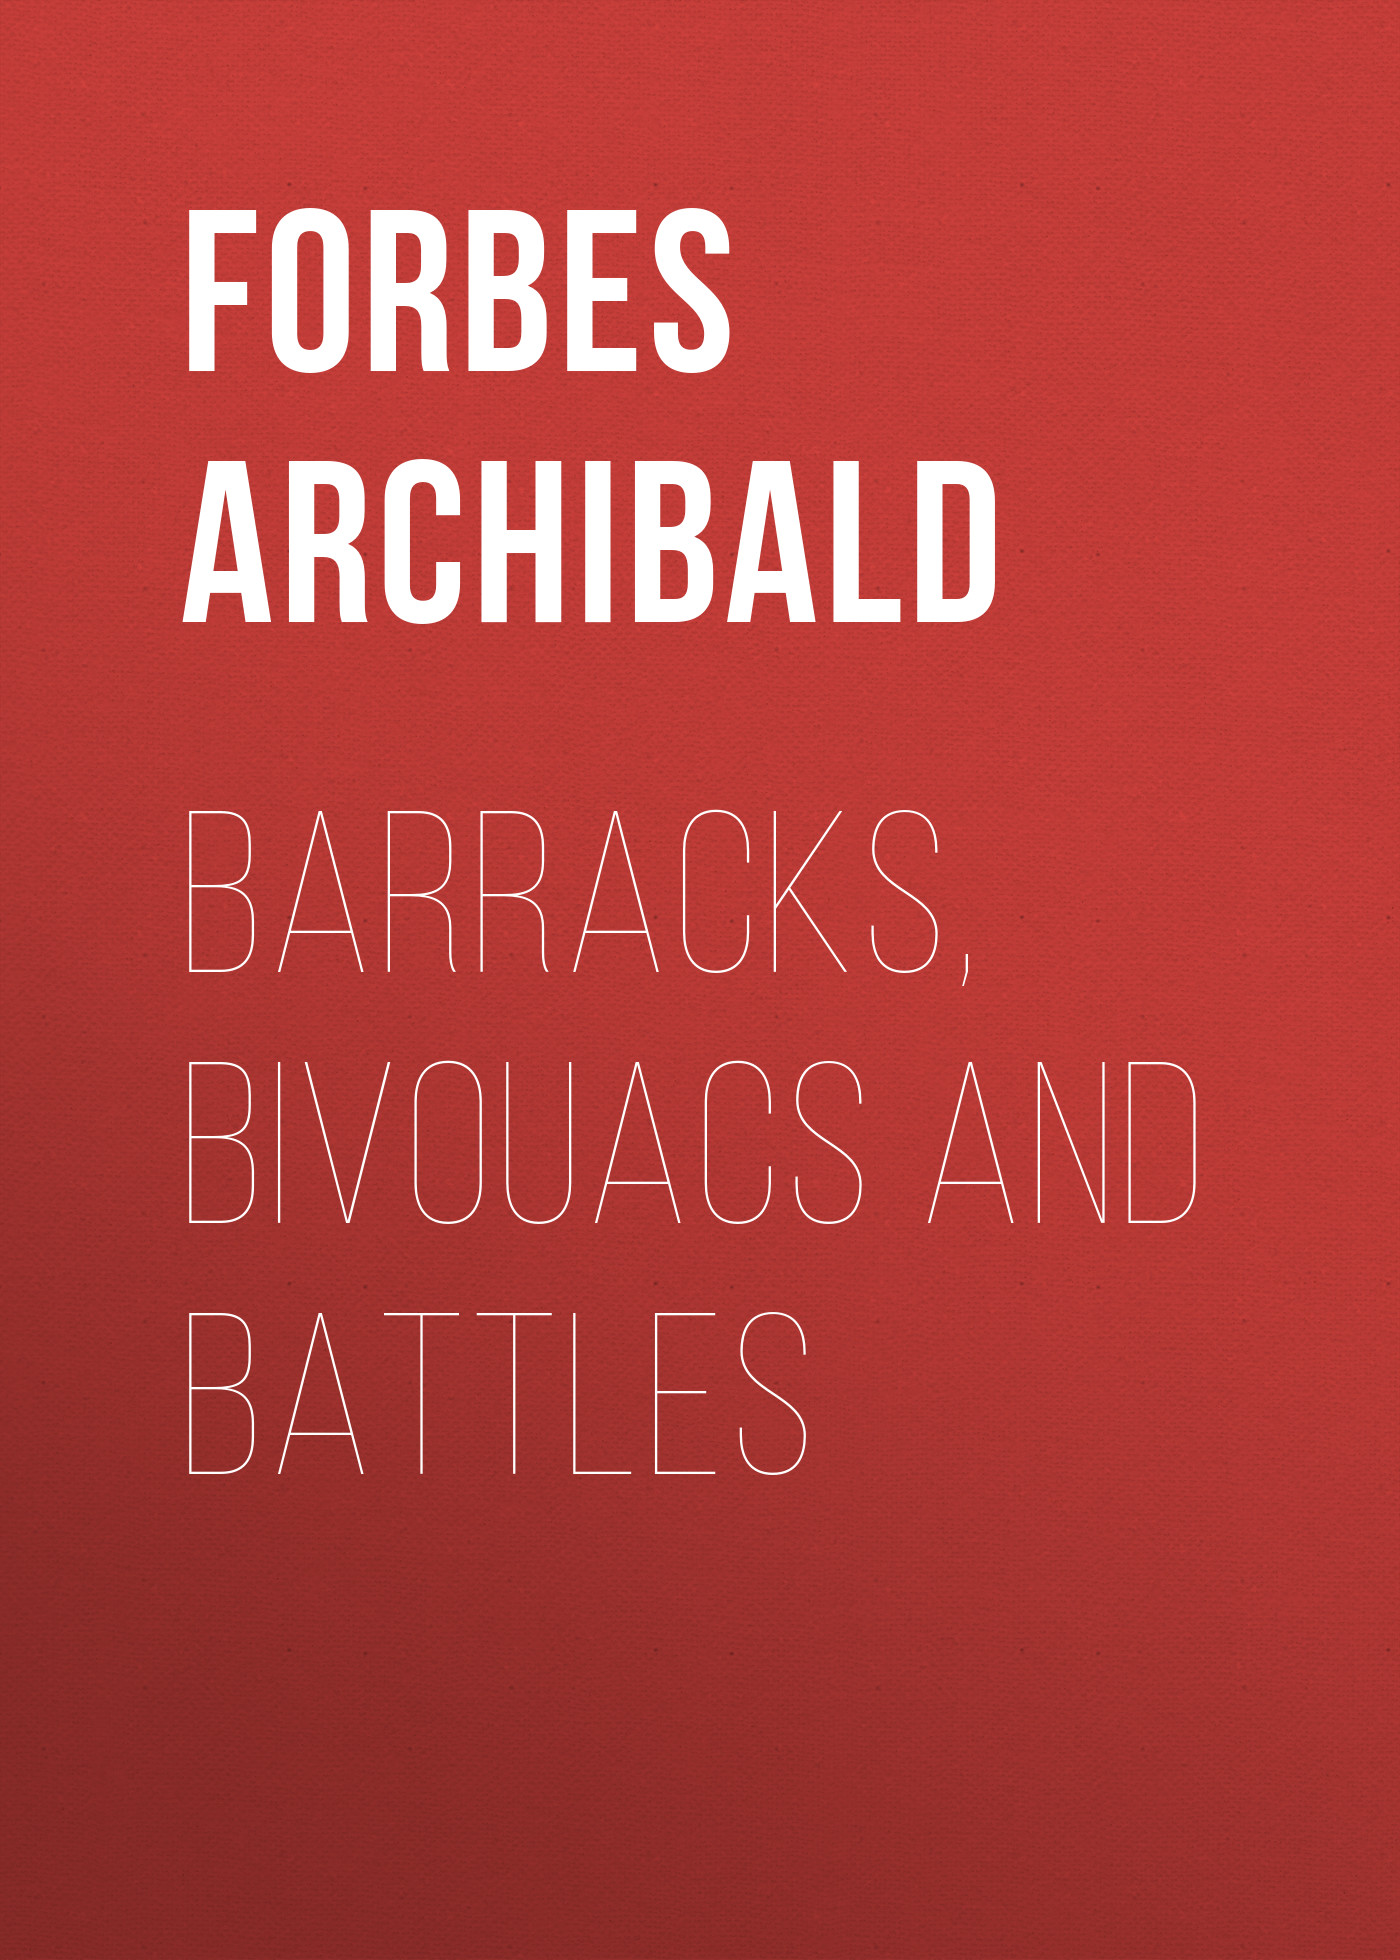 Forbes Archibald Barracks, Bivouacs and Battles